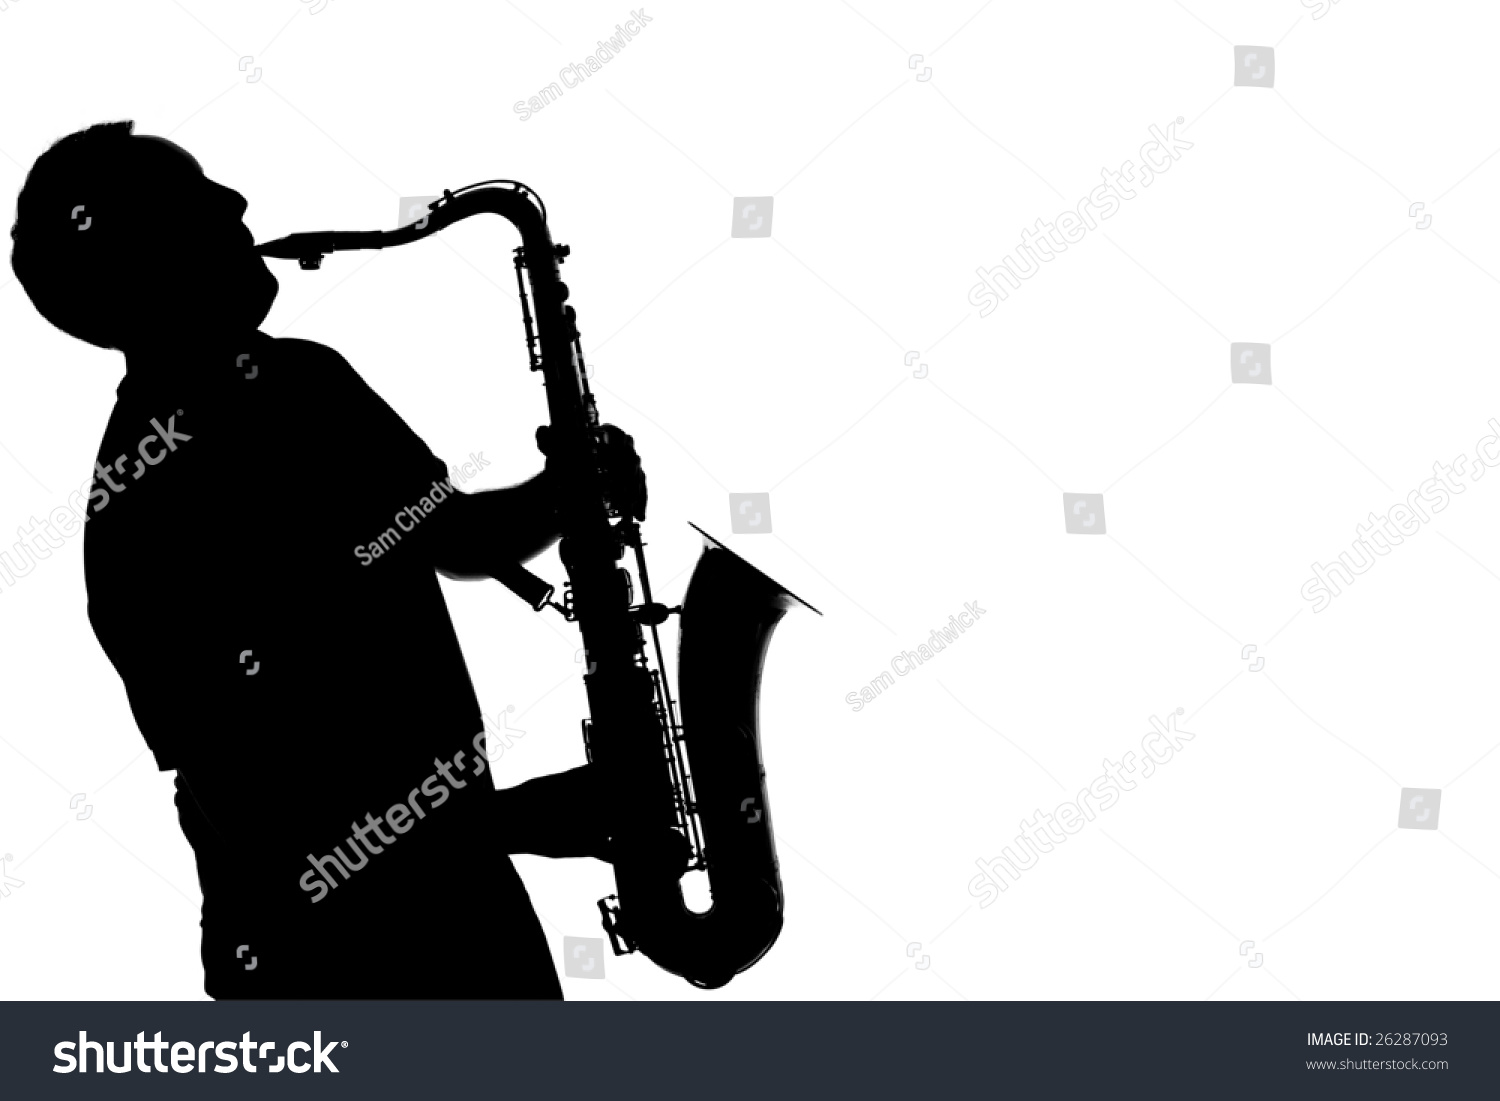 Silhouette Of A Man Playing A Saxophone Stock Photo ...